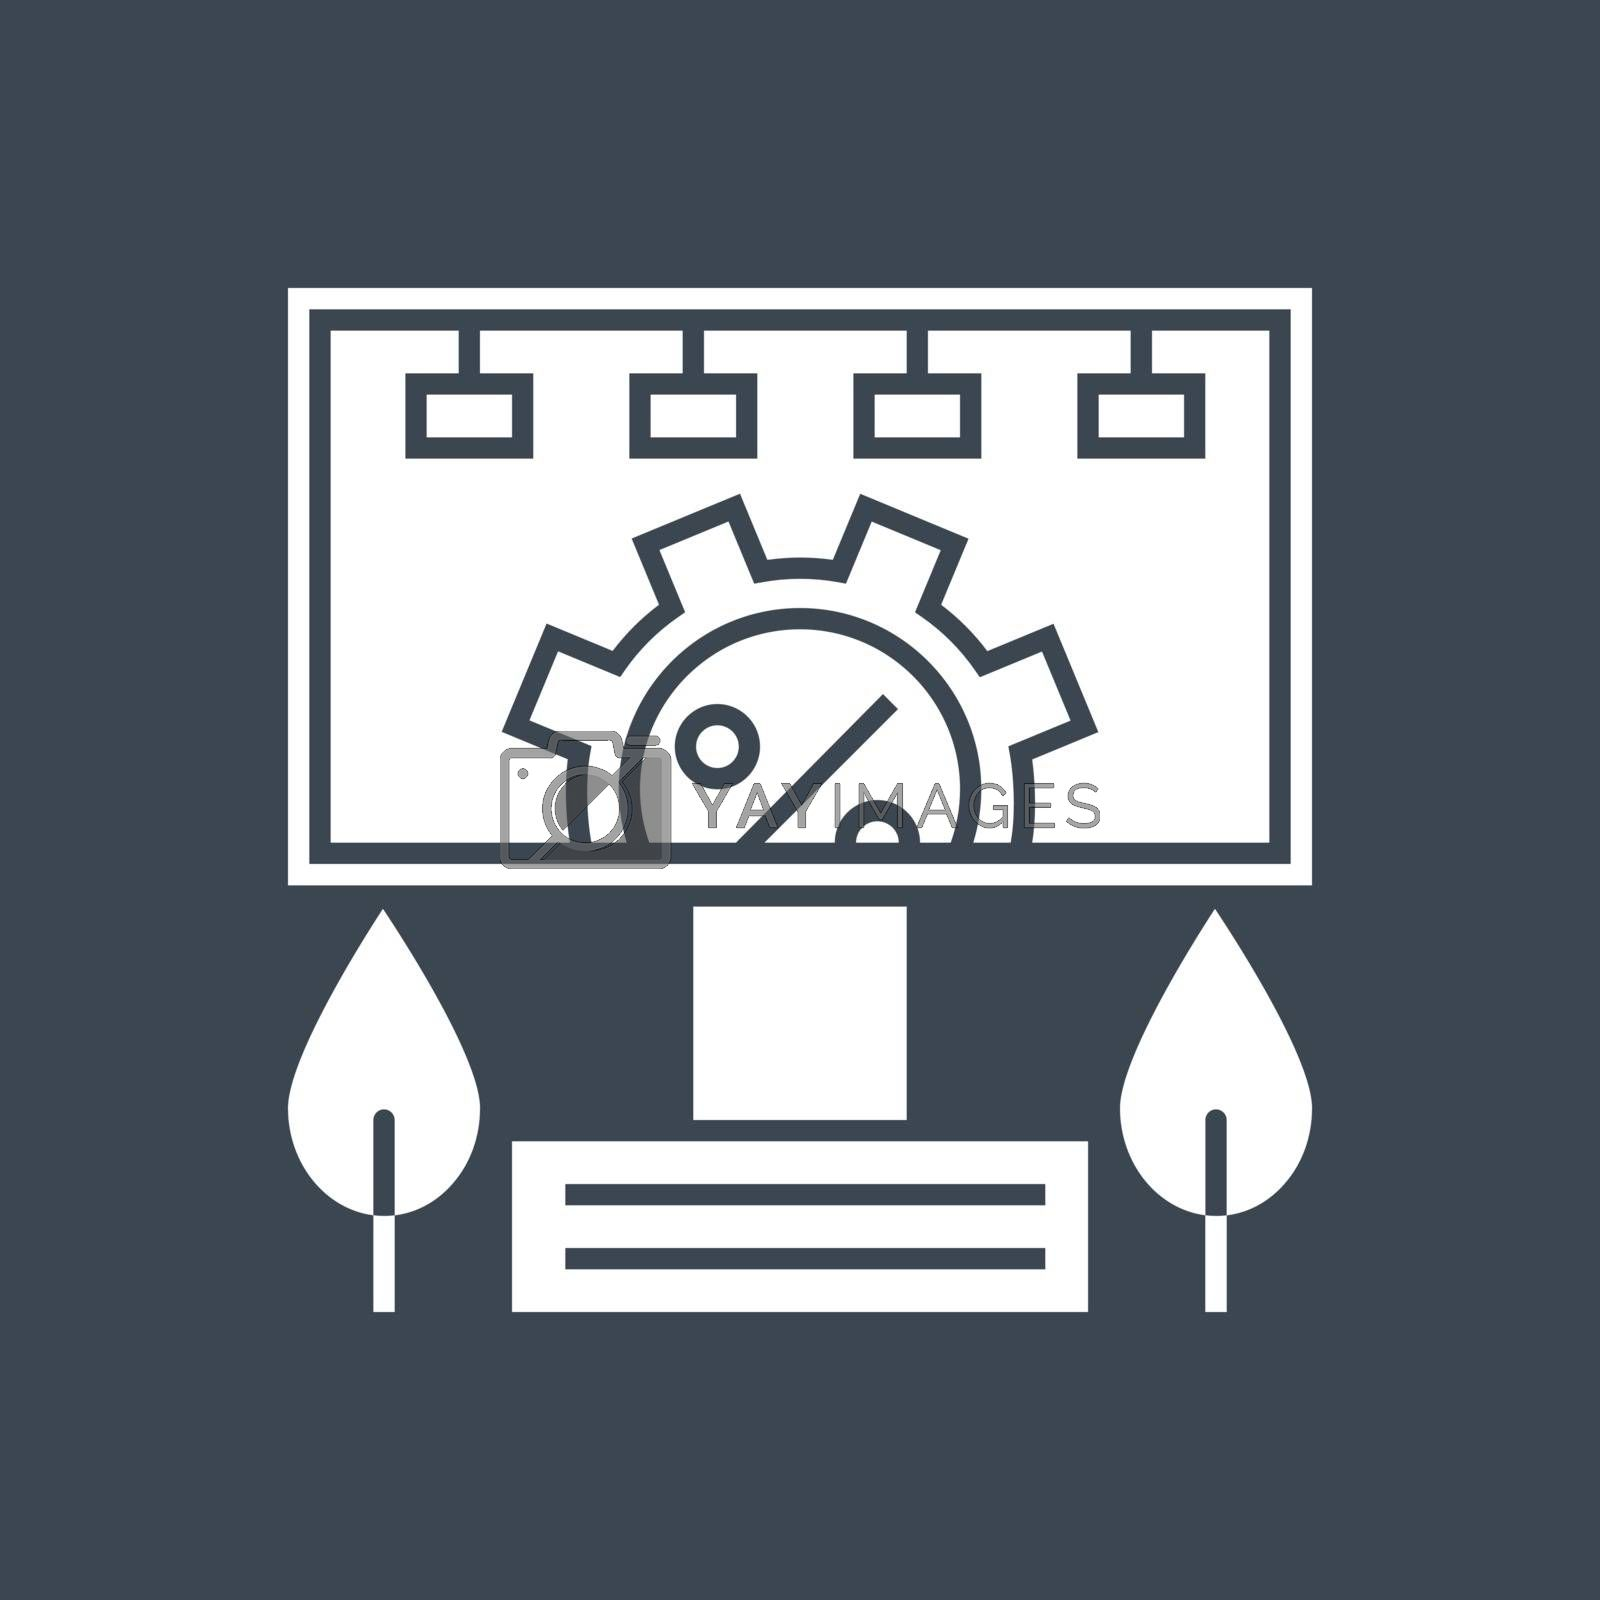 Adverting Service Related Vector Glyph Icon. Isolated on Black Background. Vector Illustration.